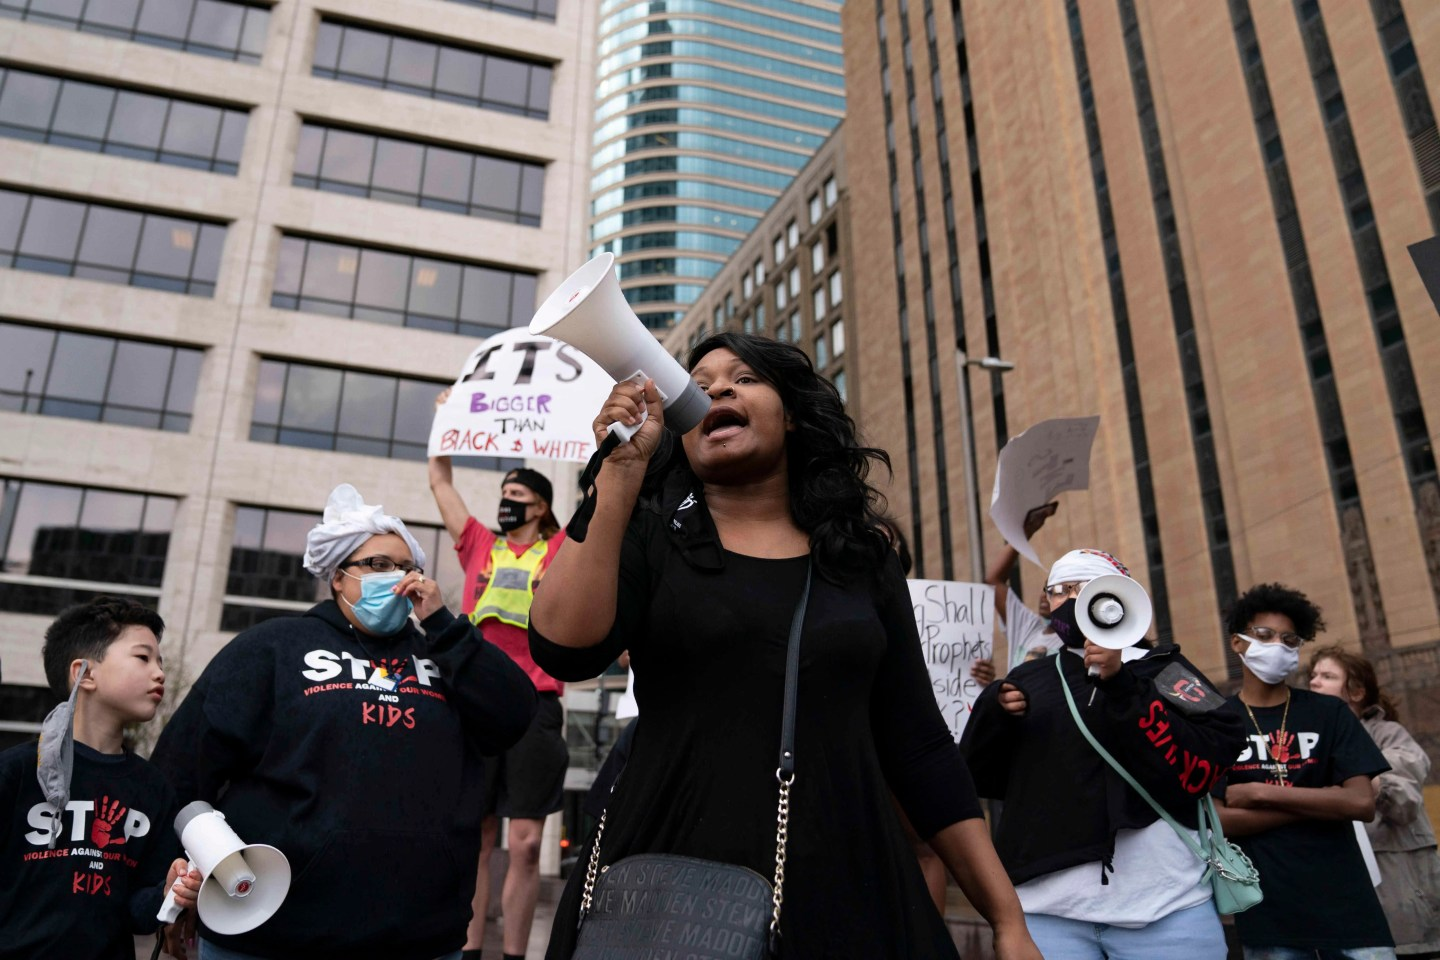 Toshira Garraway leads chants during a protest in front of the Minneapolis Government Center in Minneapolis, MN on April 6, 2021. Garraway founded the organization Families Supporting Families Against Police Violence after her fiance, Justin Teigen, was was found dead at a recycling facility after he was pulled over by St. Paul police.